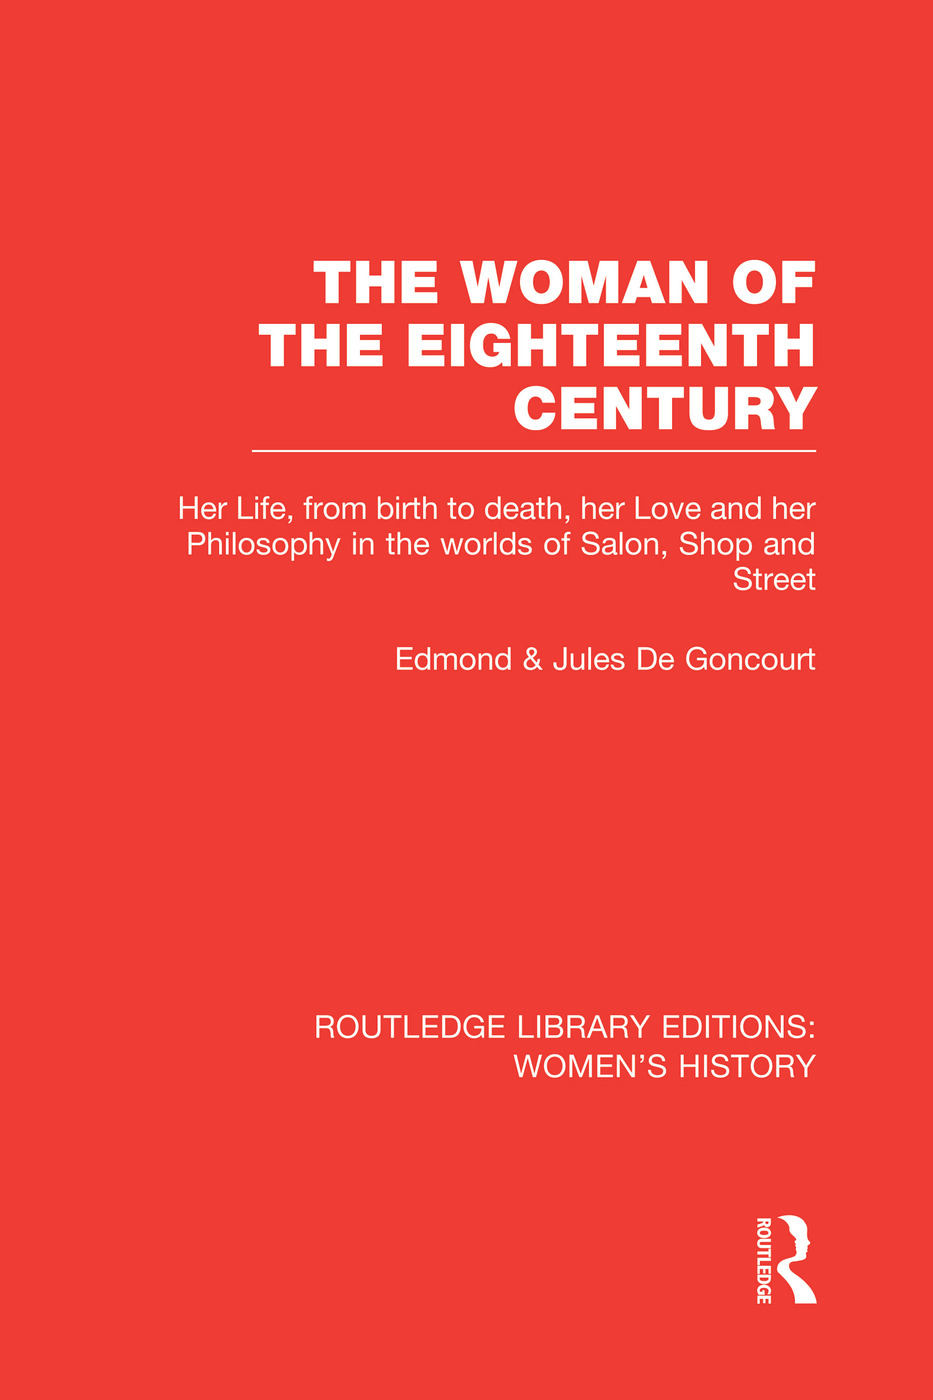 The Woman of the Eighteenth Century: Her Life, from Birth to Death, Her Love and Her Philosophy in the Worlds of Salon, Shop and Street book cover